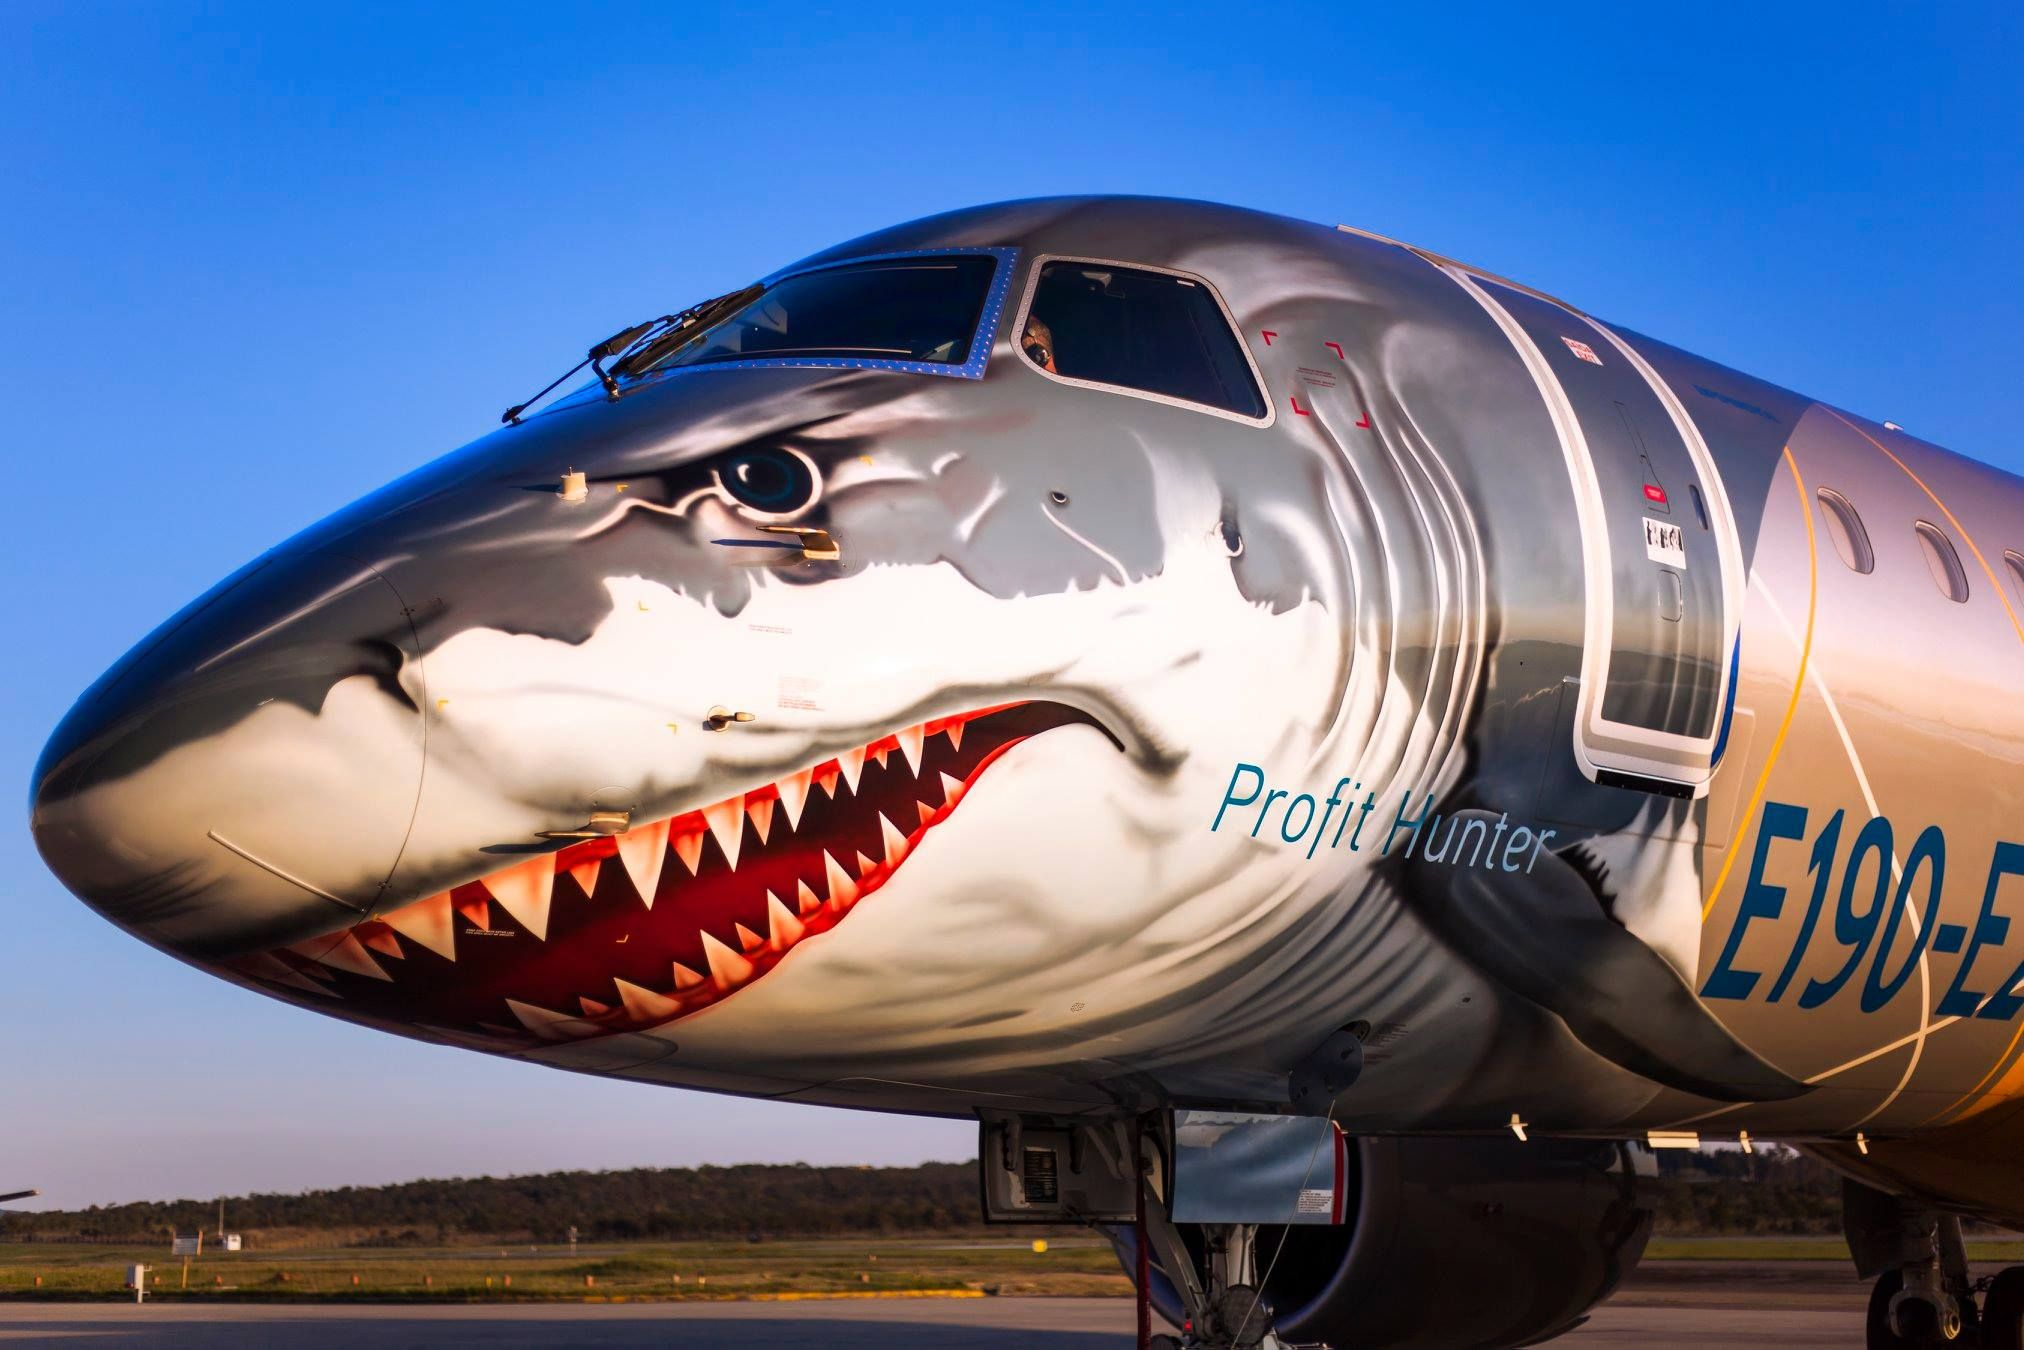 Closeup of new Embraer E2 regional jets, the Profit Hunter, with shark livery